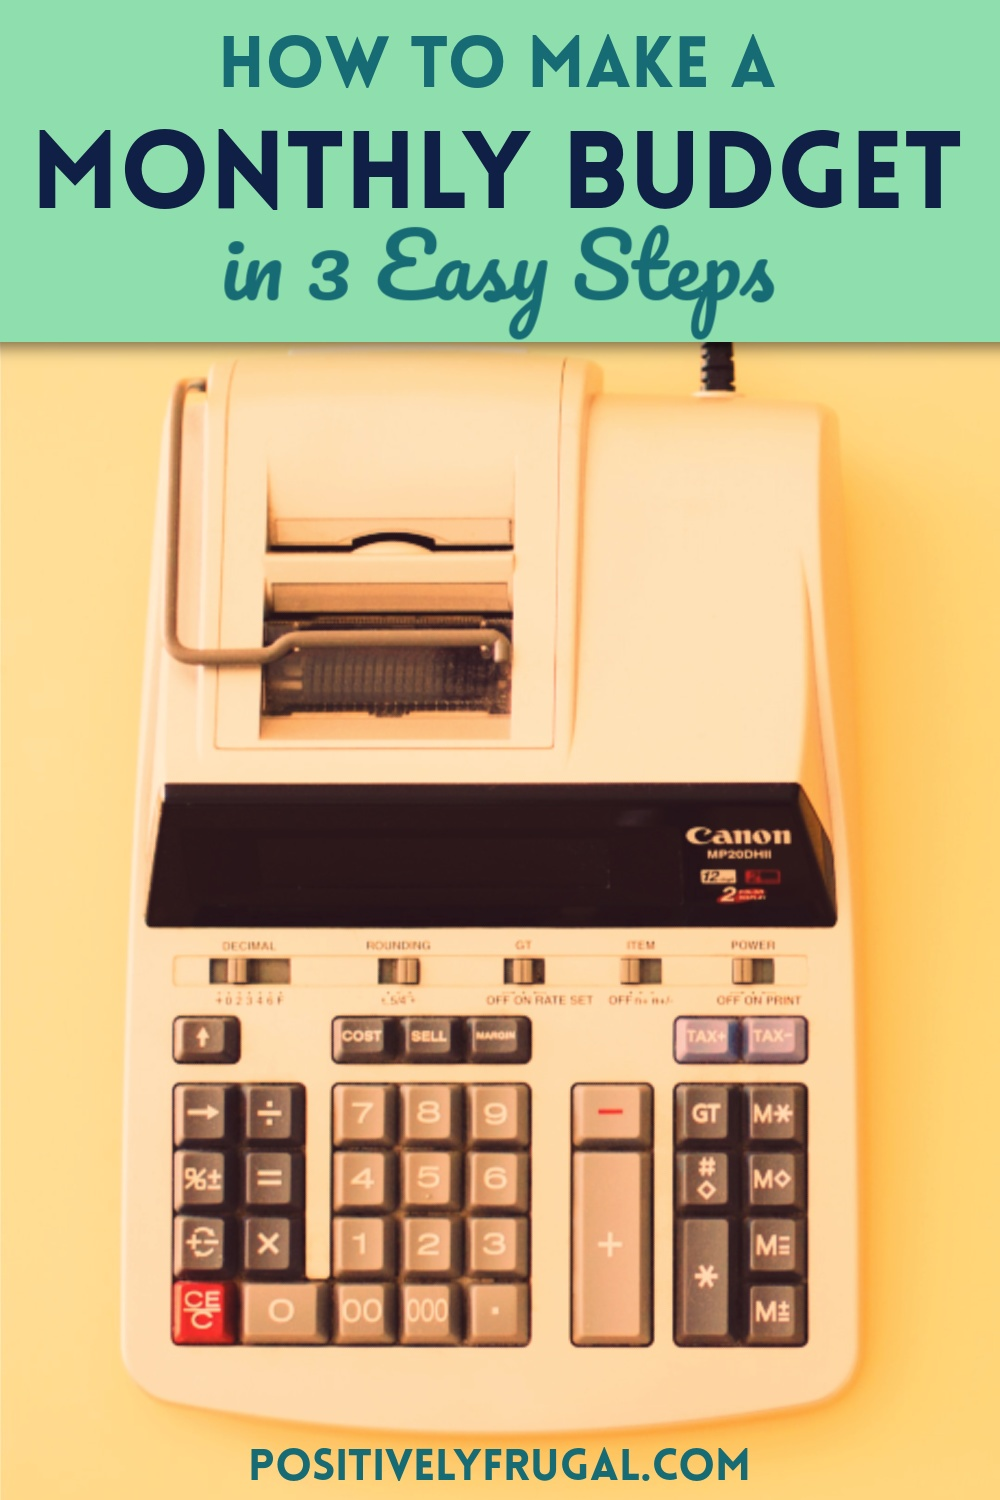 How To Make a Monthly Budget by PositivelyFrugal.com